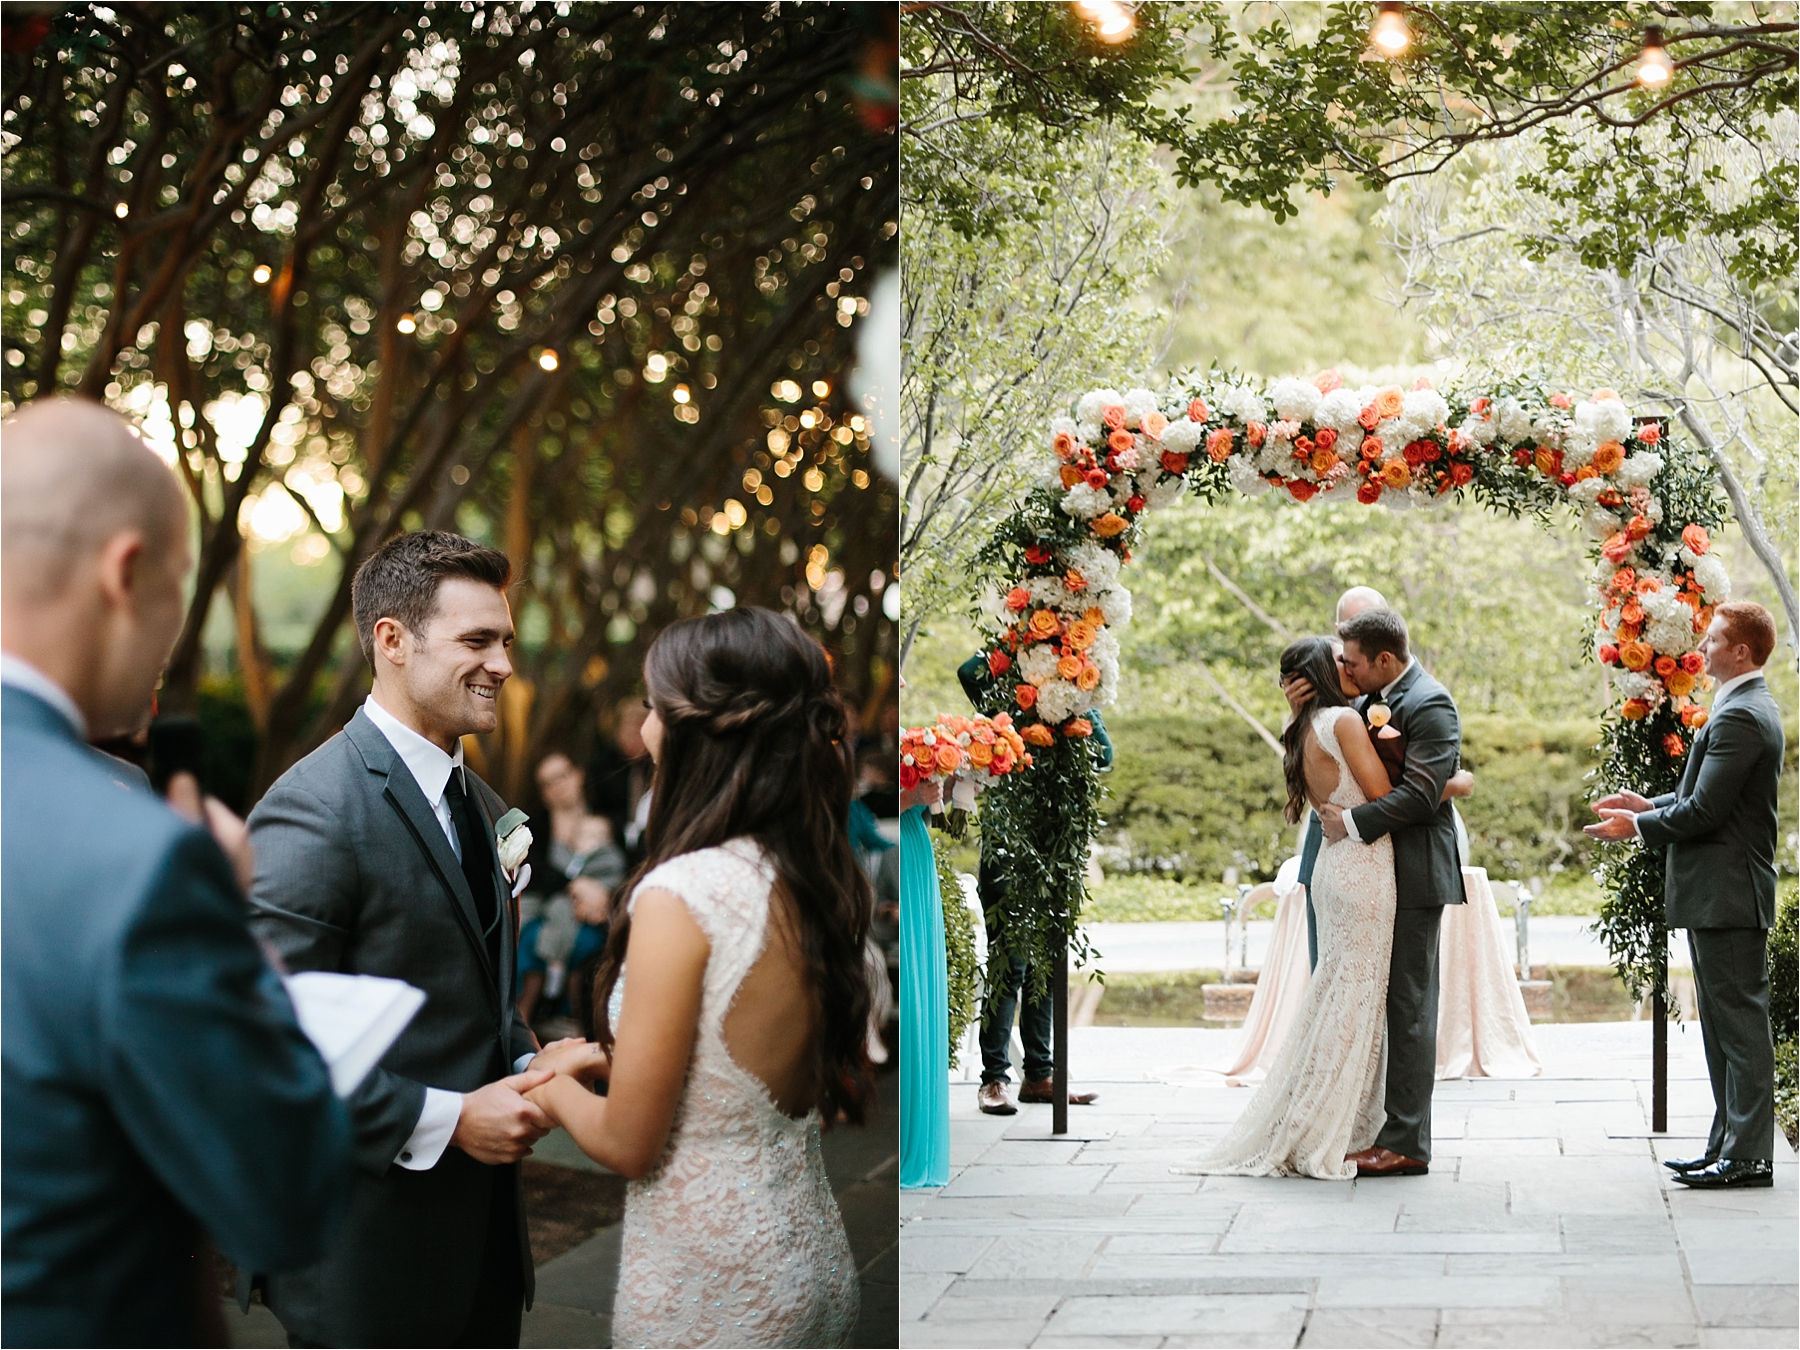 Devyn + Caden __ a Dallas Arboretum Garden Style Wedding by North Texas Wedding Photographer Rachel Meagan Photography __ 112